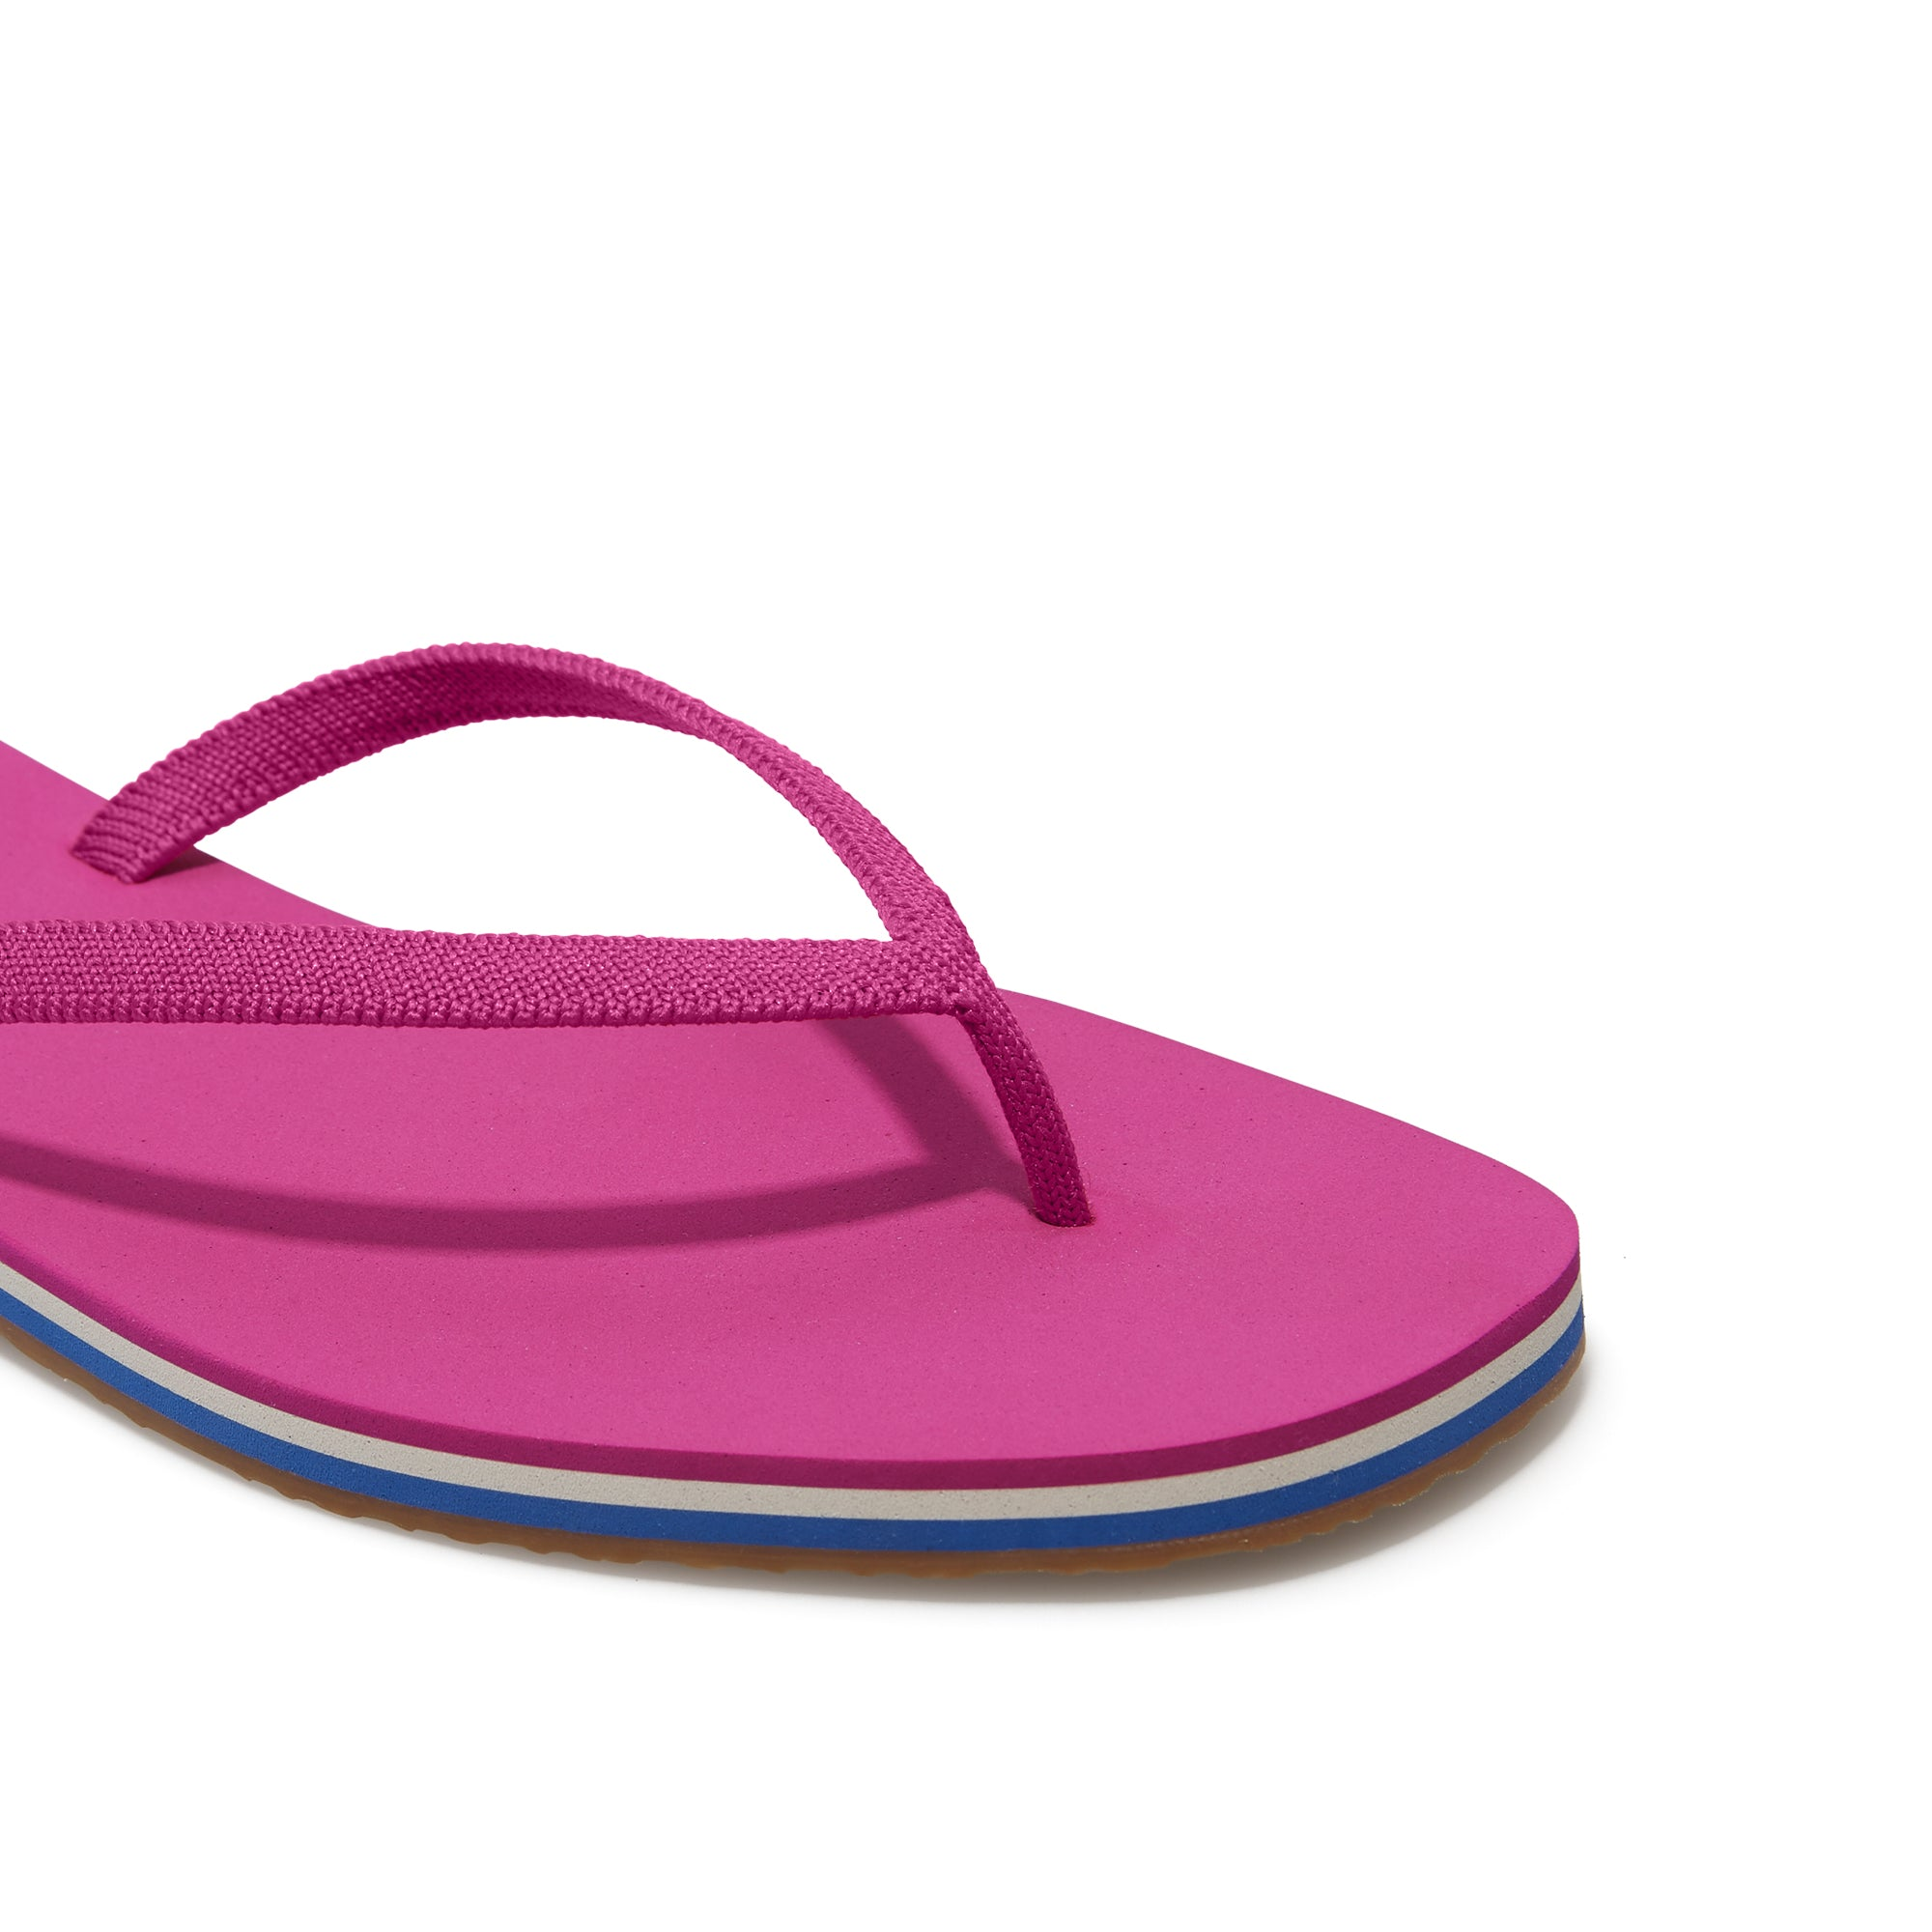 The Flip Flop sandal in Flamingo shown from the top view with detailing of the front of the sandal.